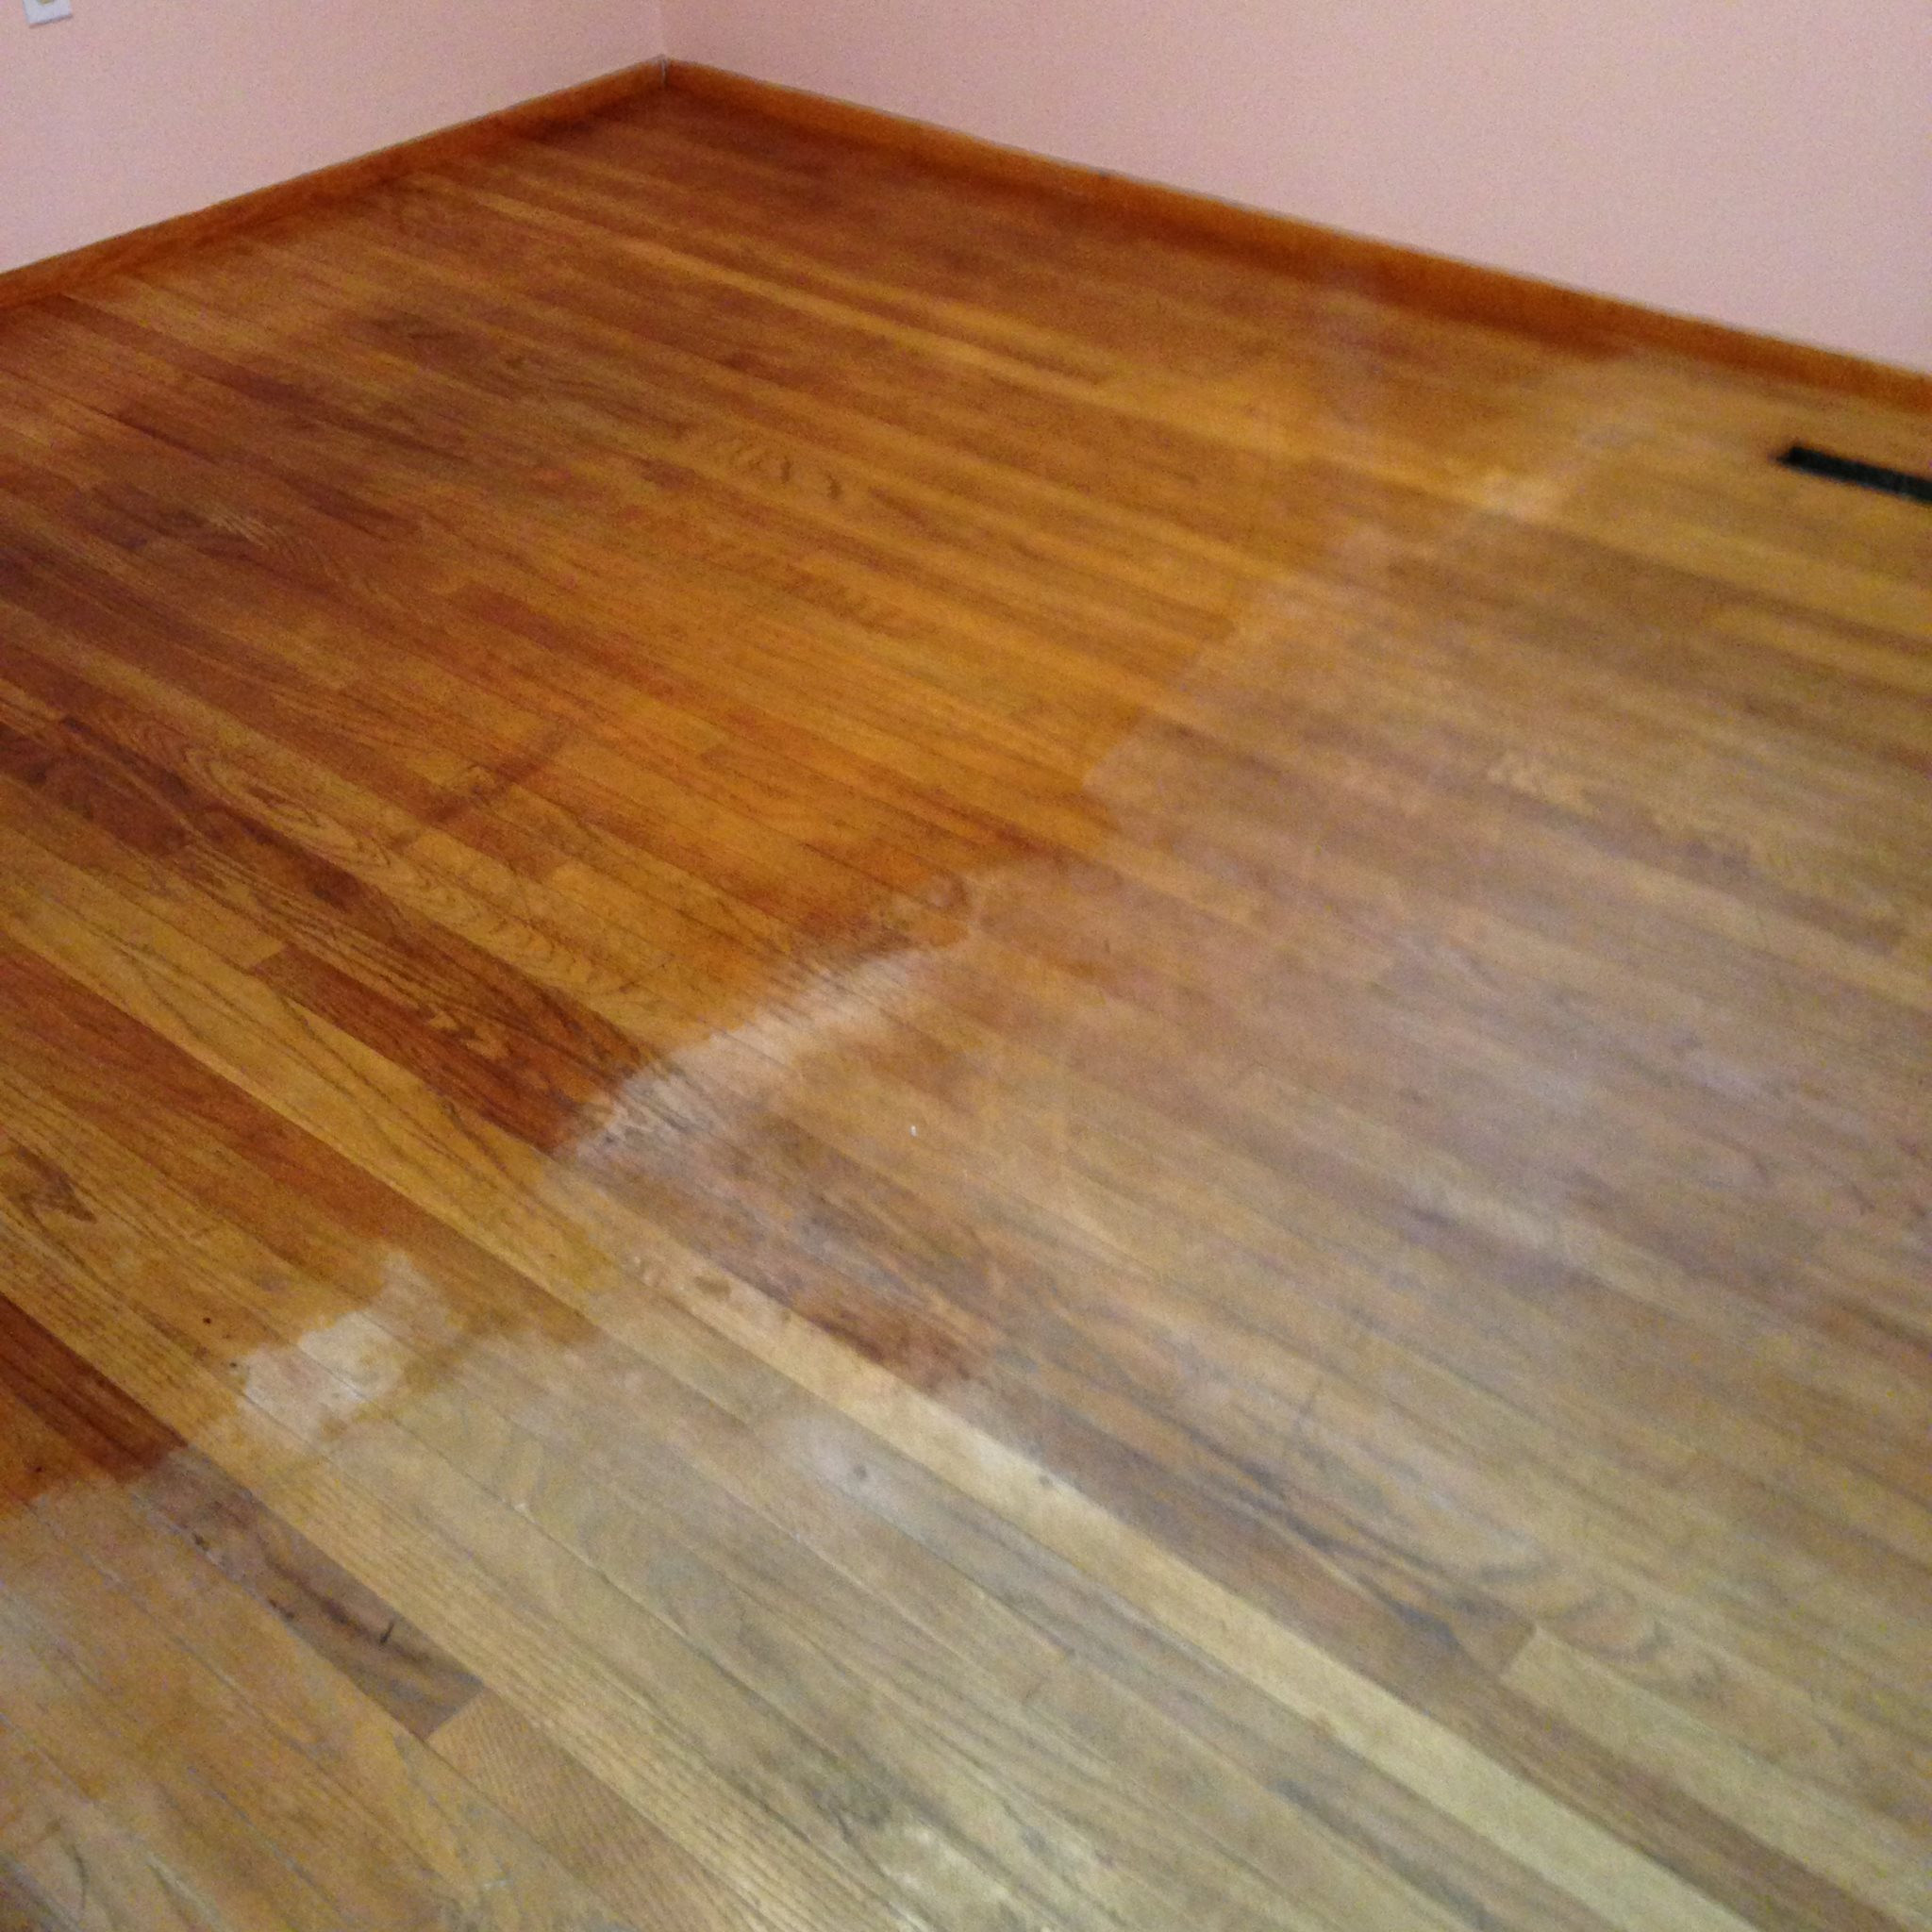 staining hardwood floors video of 15 wood floor hacks every homeowner needs to know throughout wood floor hacks 15